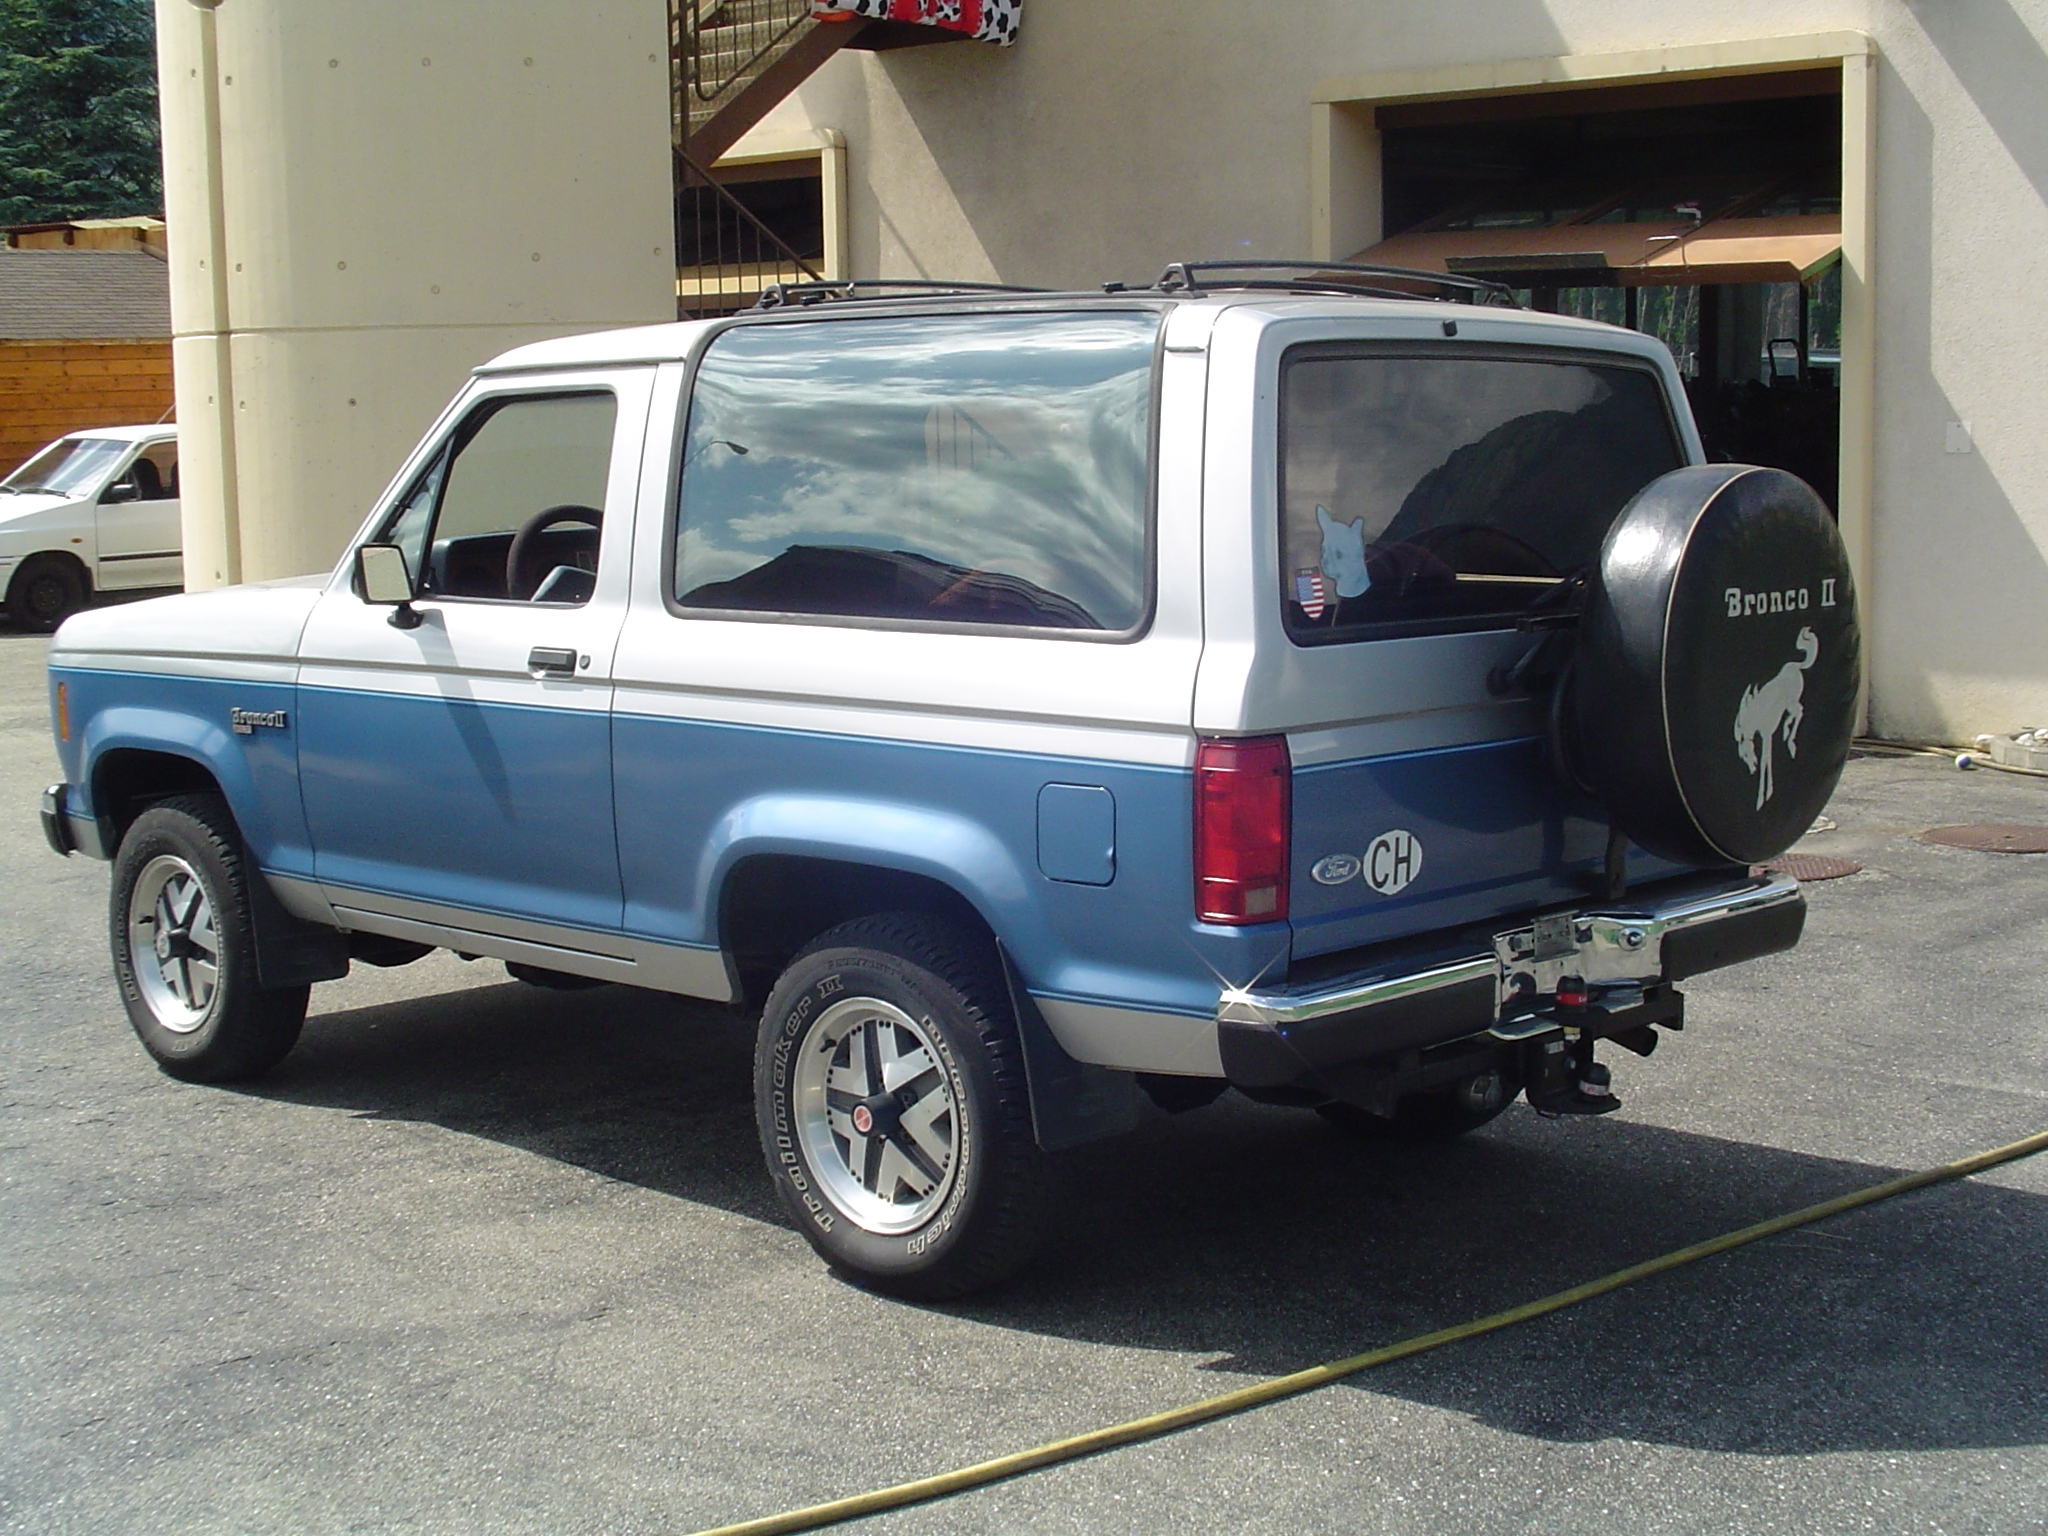 1988 ford bronco ii 2wd mpg